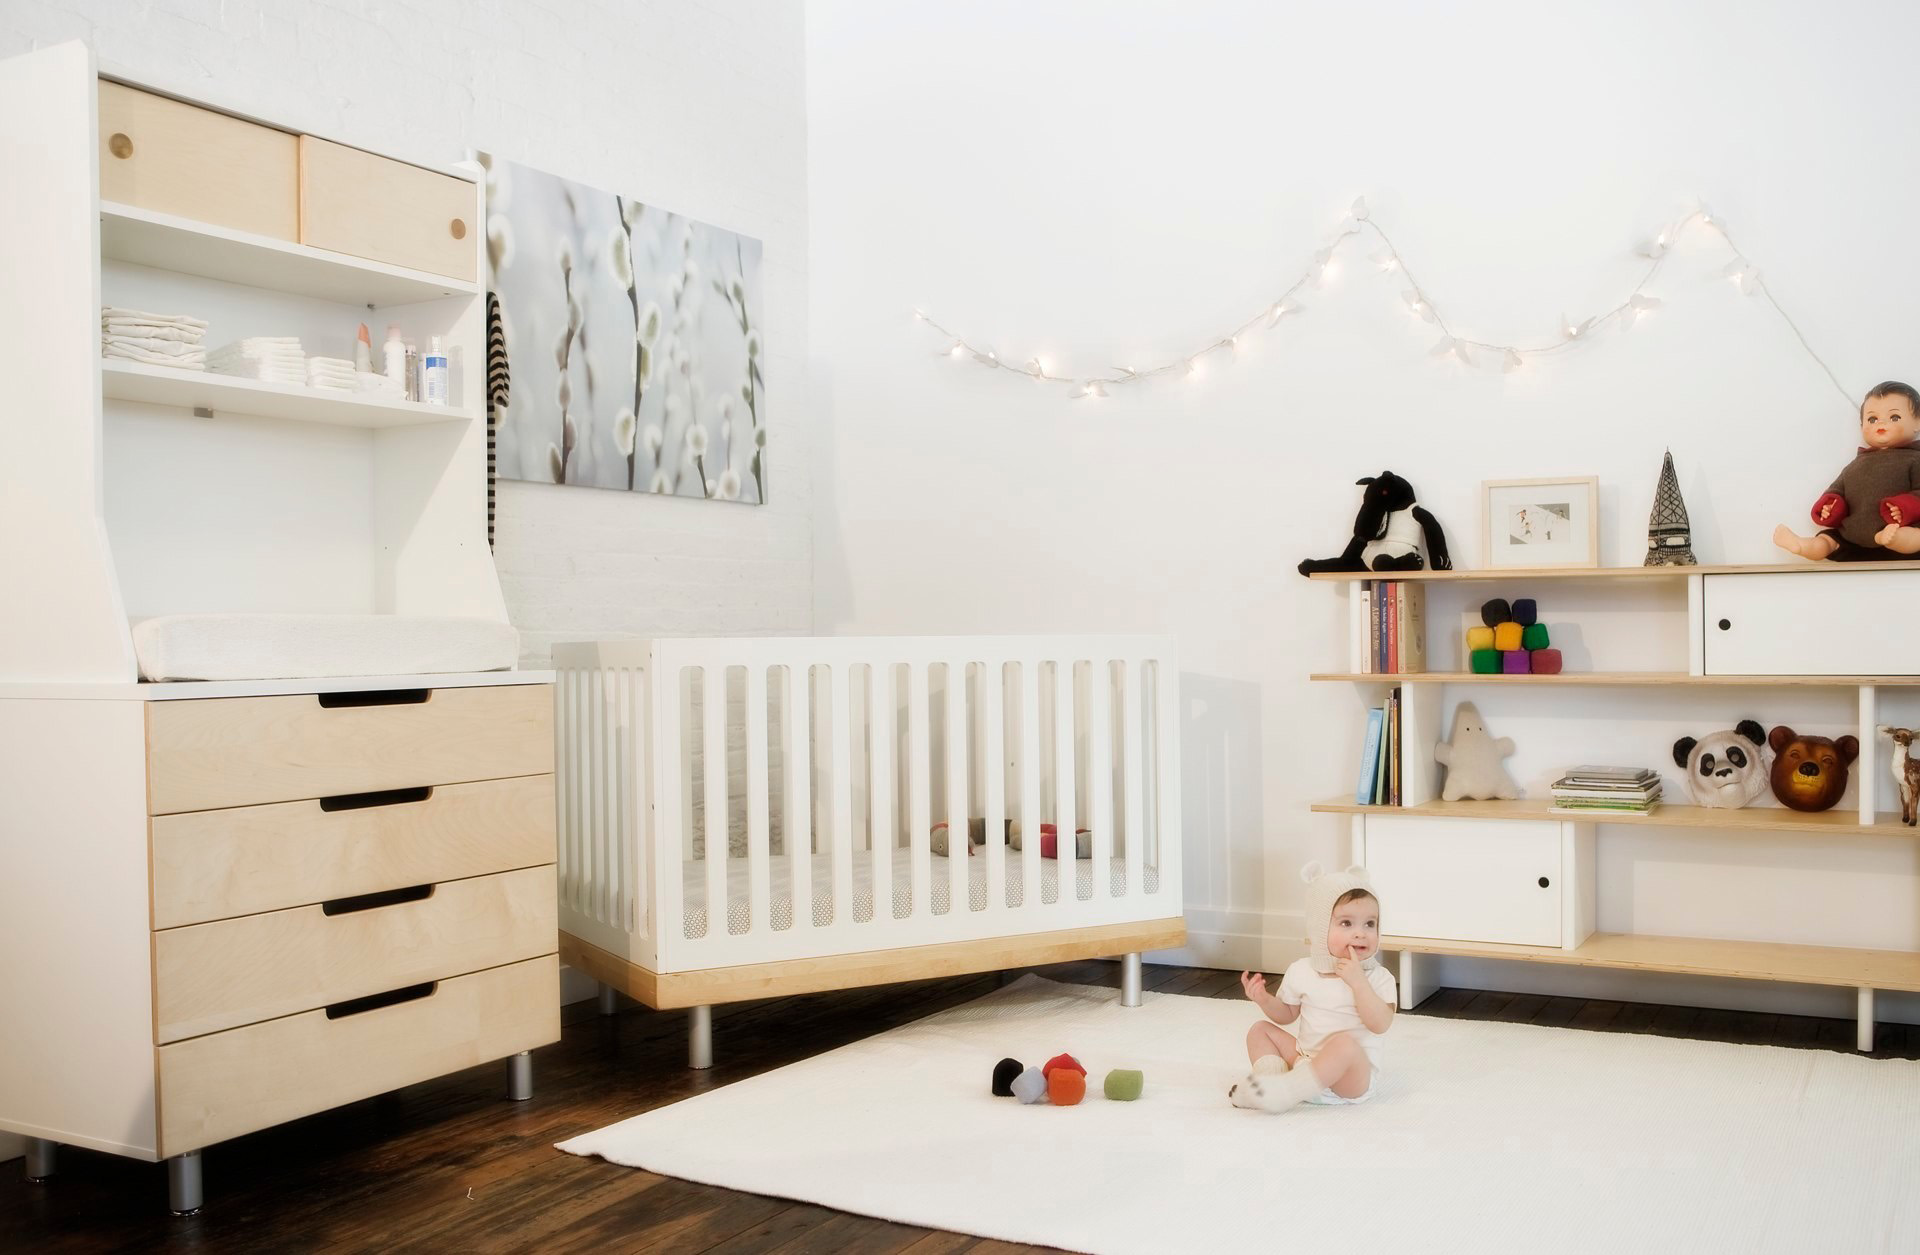 hardwood flooring white rug simple white wooden crib white wall white and  light brown wood open. Refreshing Go Green Design for Nursery   HomesFeed